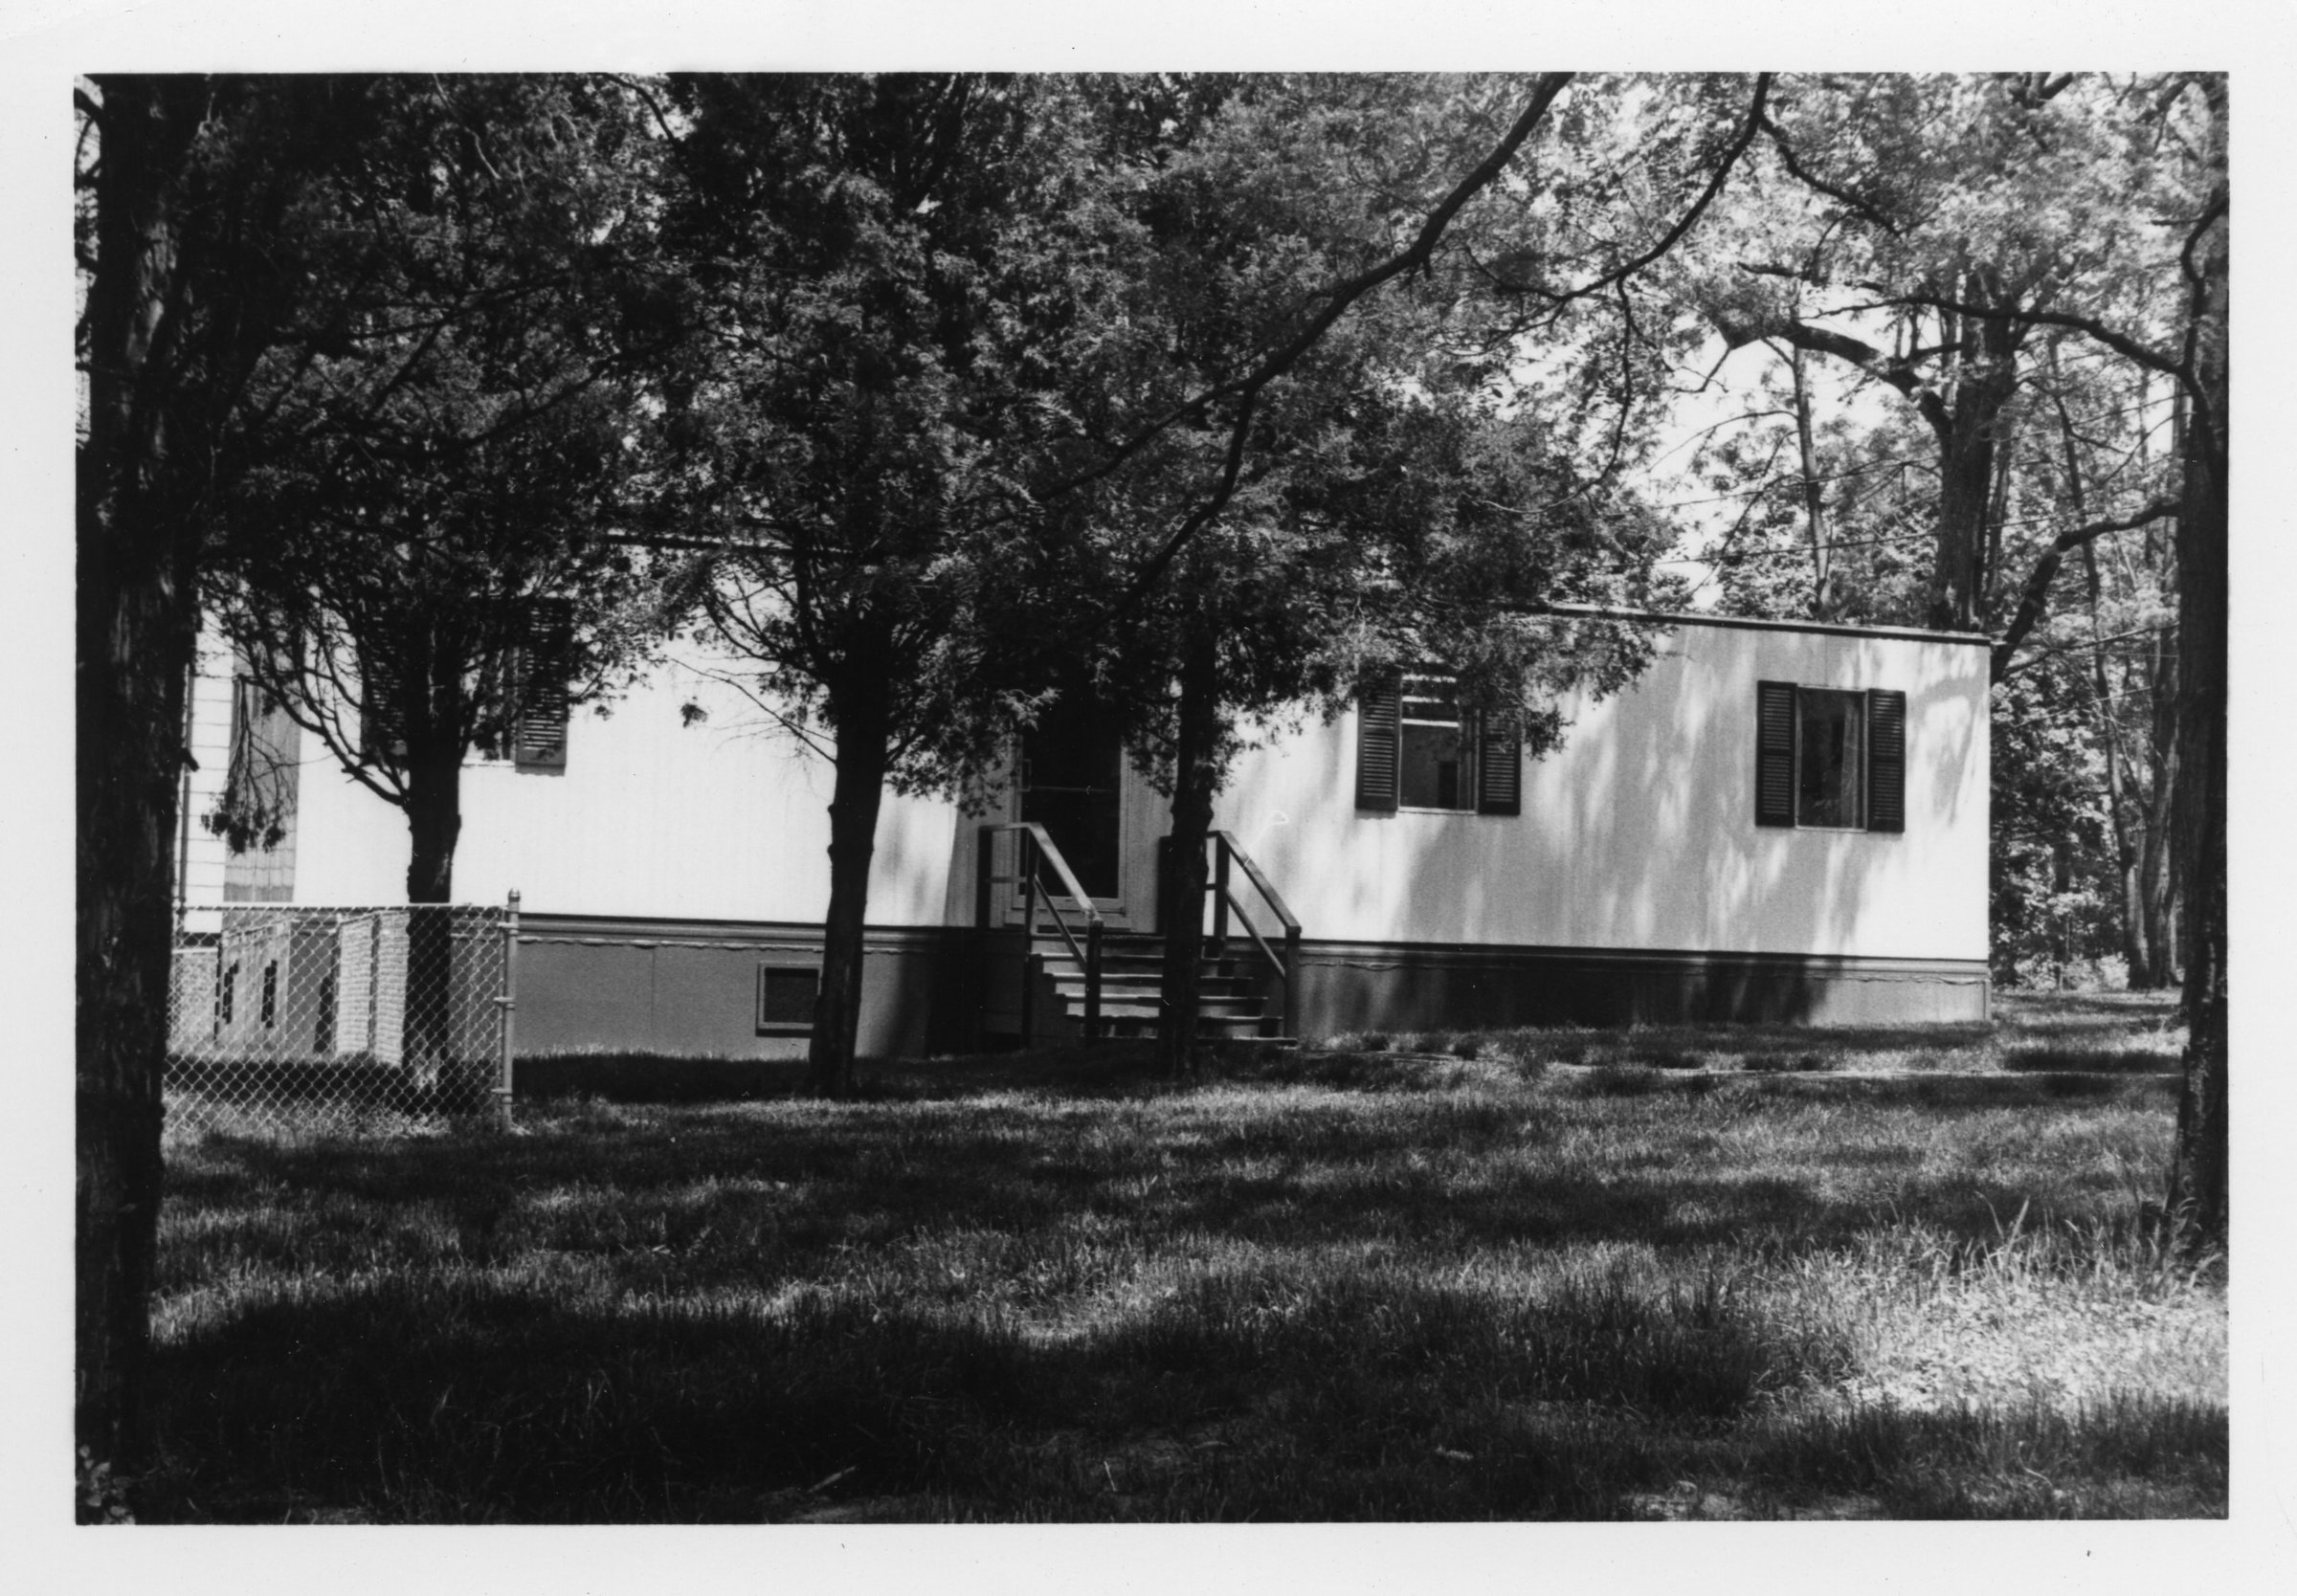 Hourly Child Care Facility, George Mason College, ca. 1971